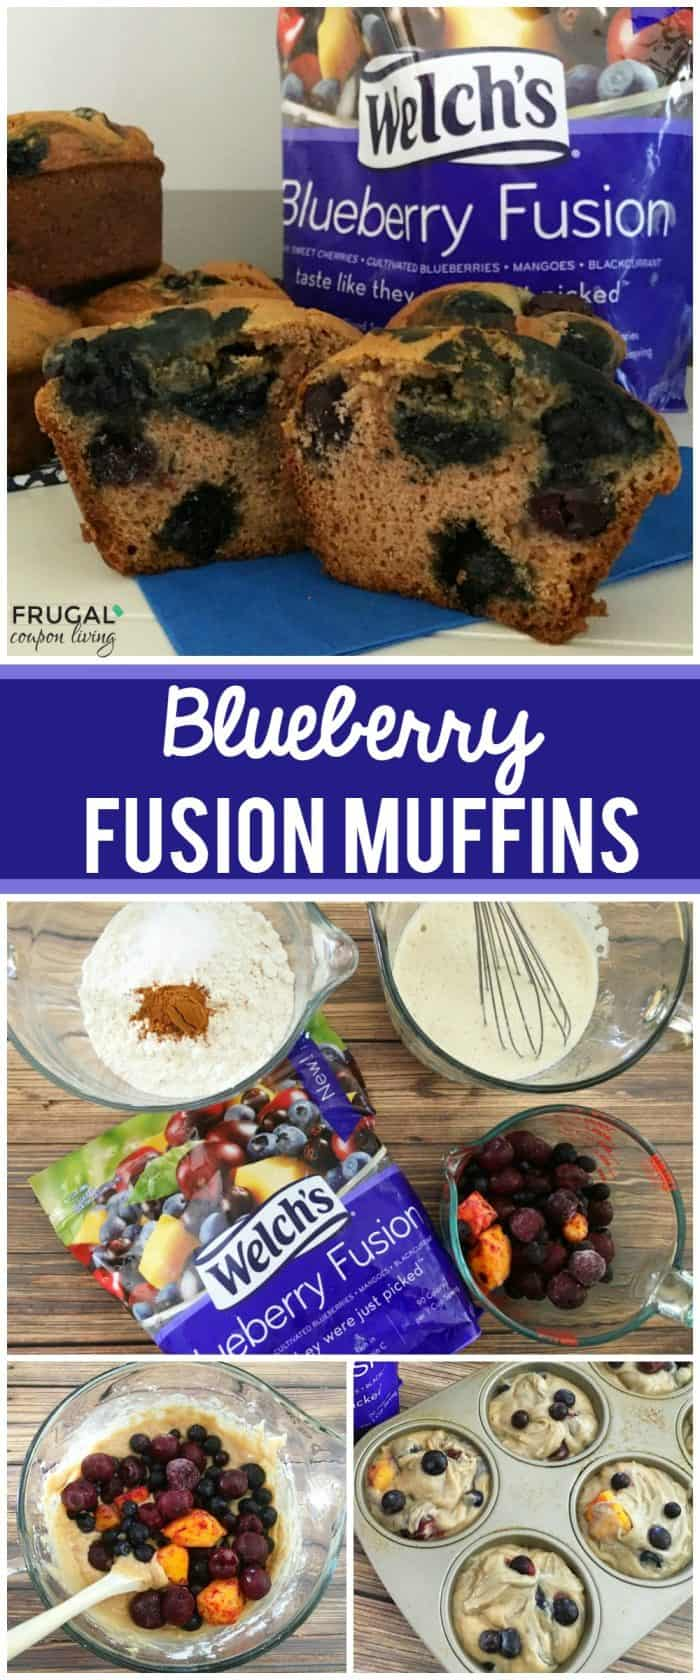 welchs-blueberry-fusion-muffins-frugal-coupon-living-long